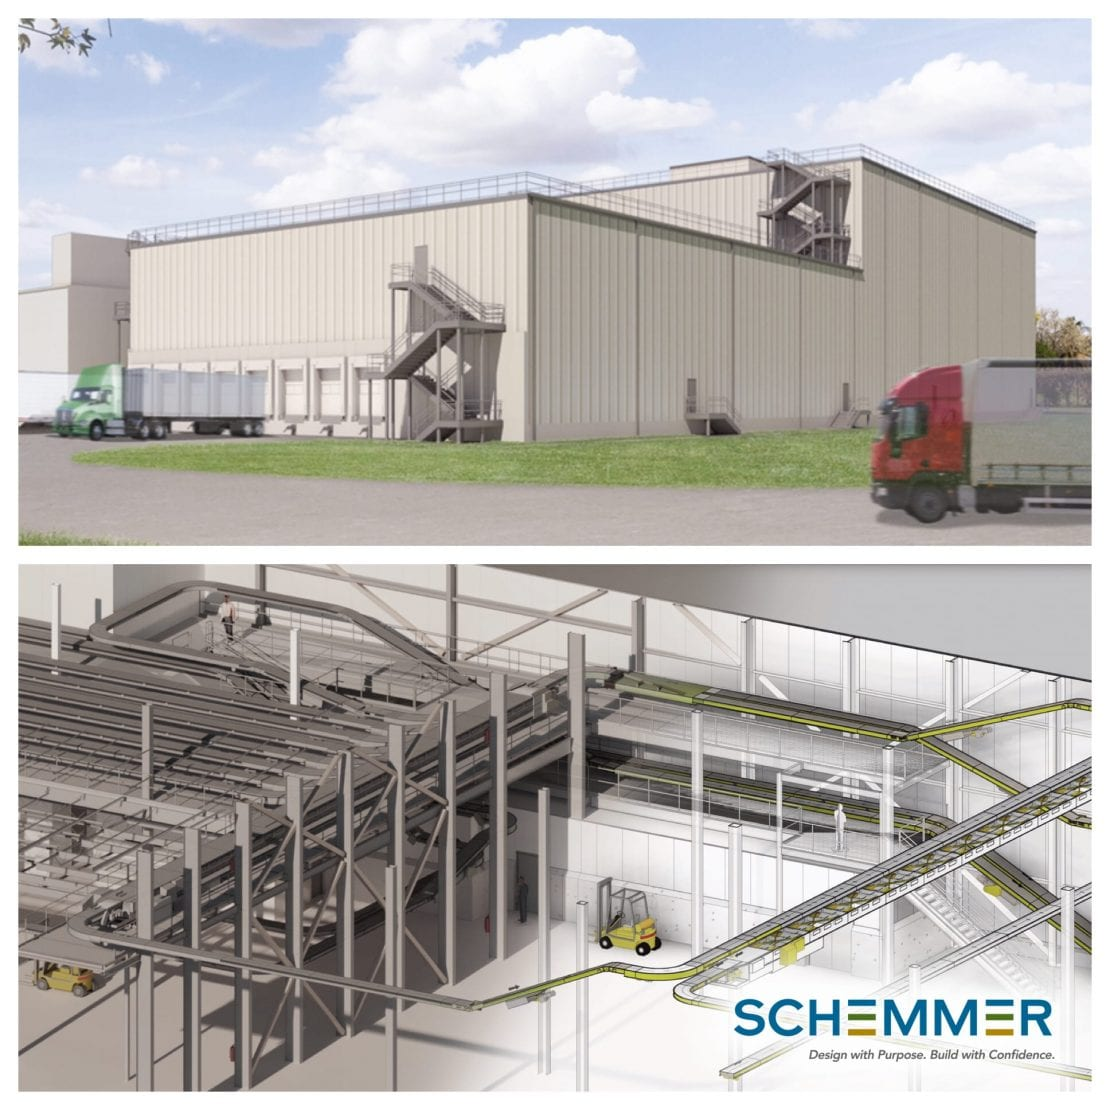 Schemmer_Industrial_Creekstone Farms - Industrial Market Experts.